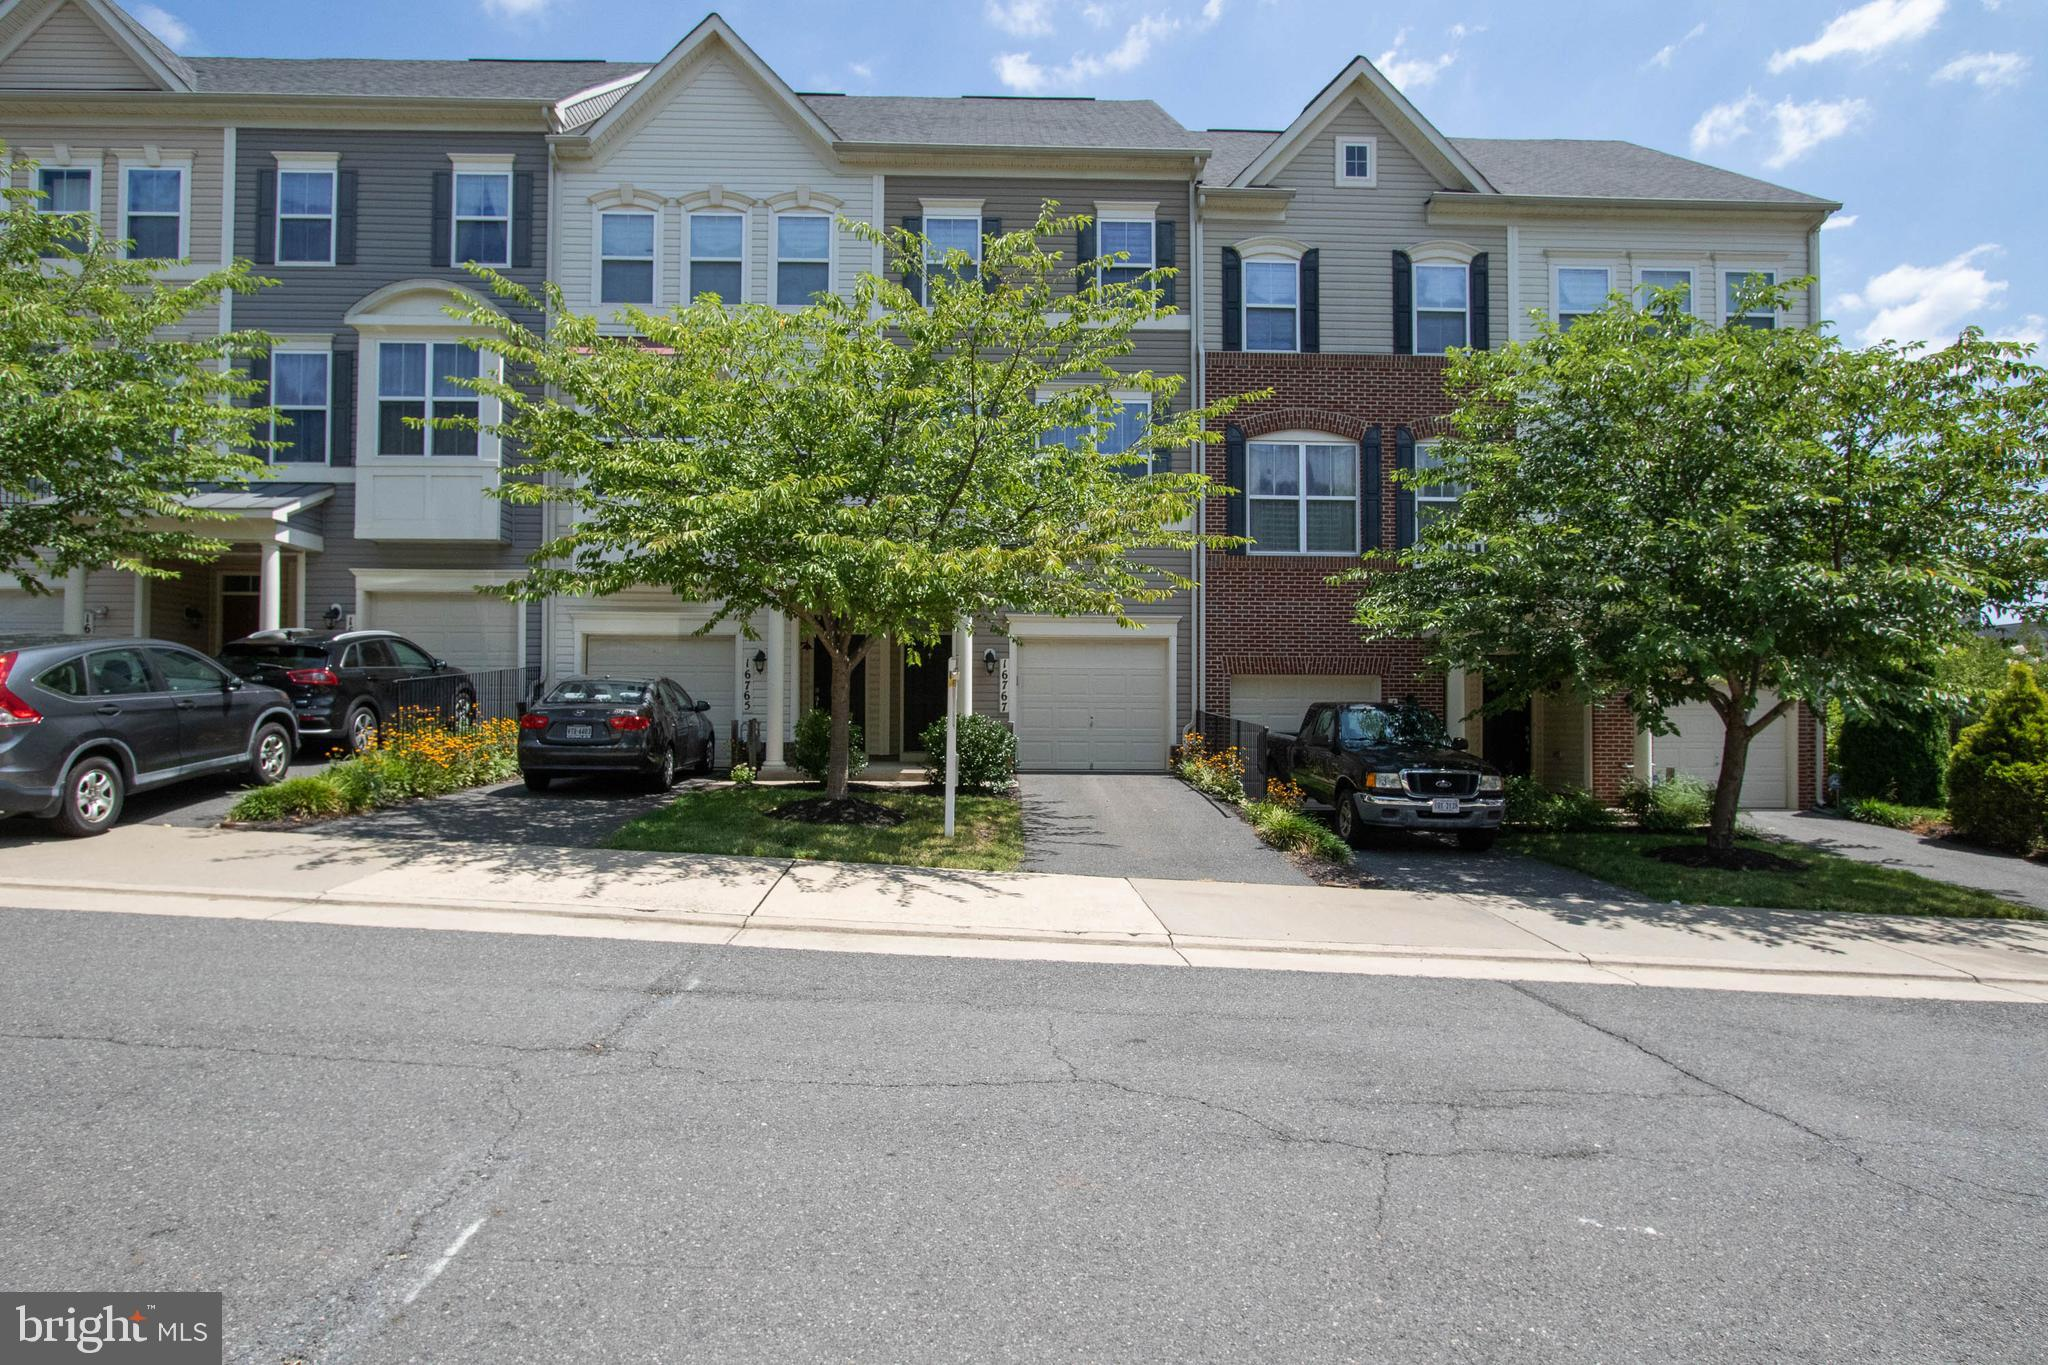 Fantastic 3 Level Garage Townhome in Excellent condition! Granite counters, kit island, hardwood flo